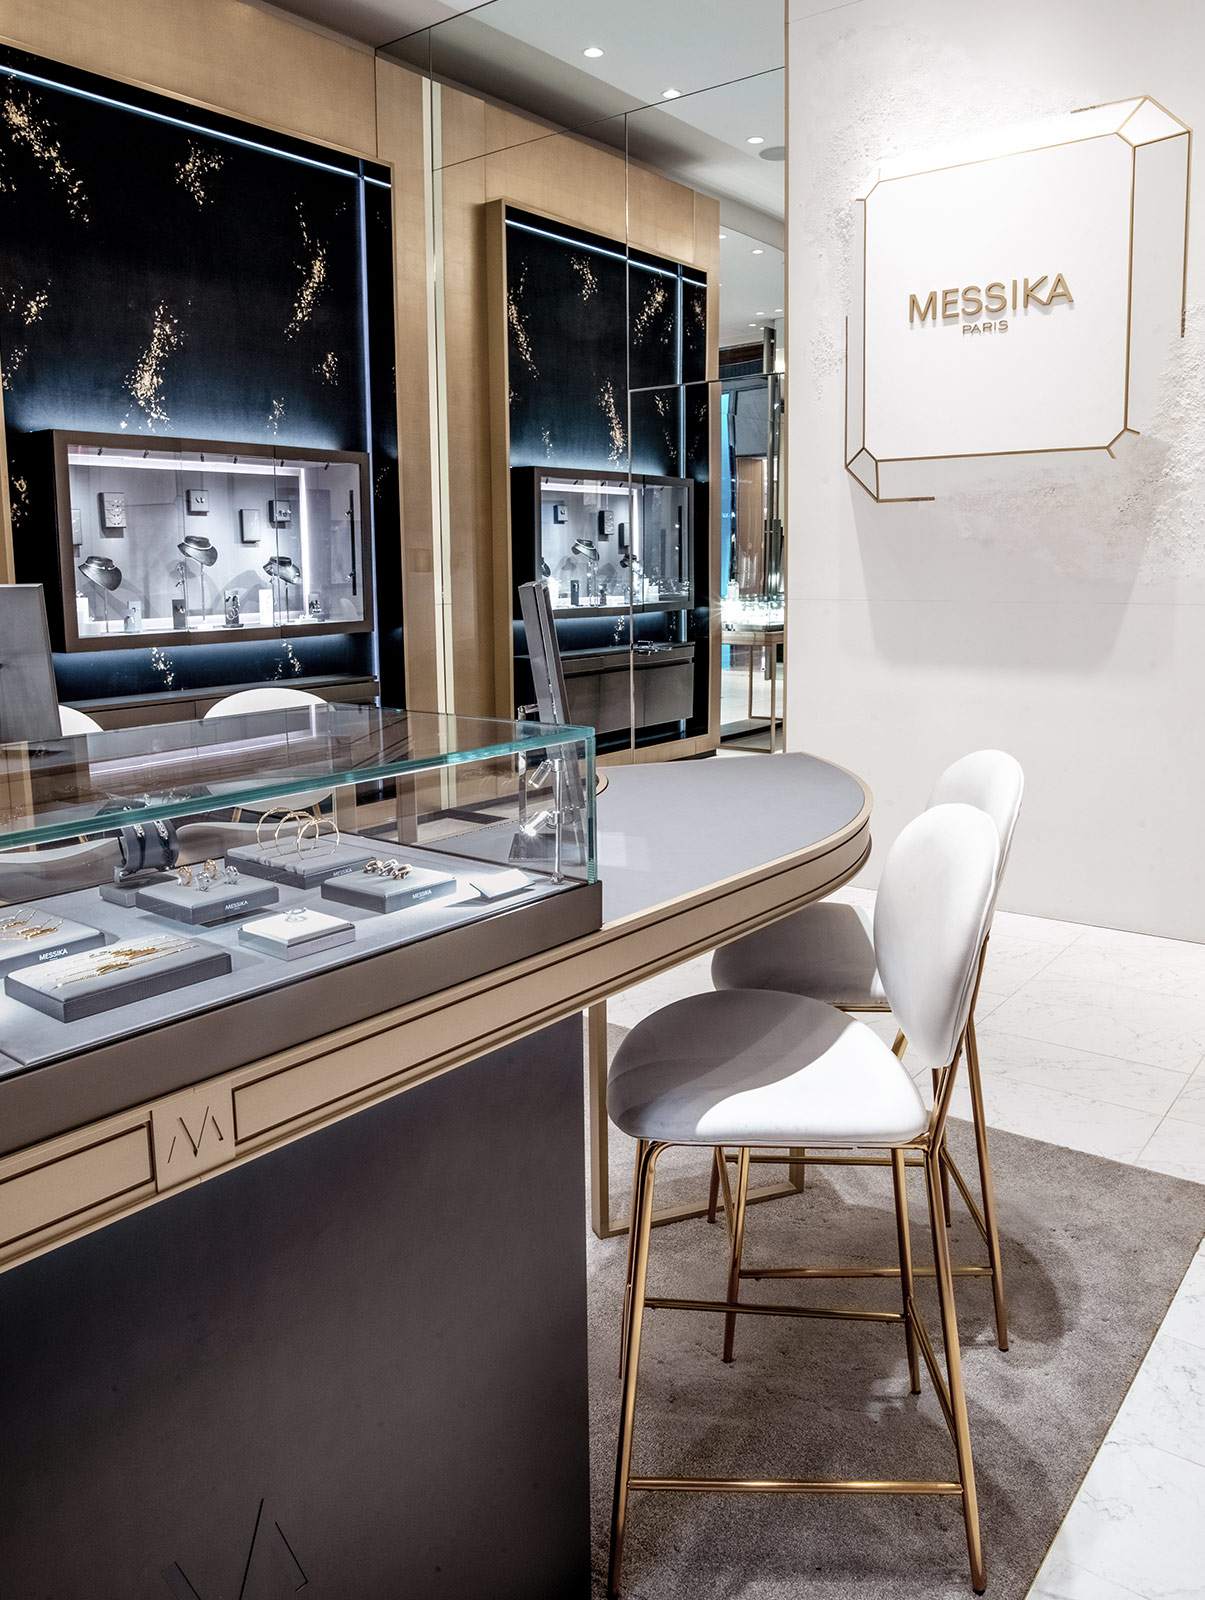 Messika Boutique